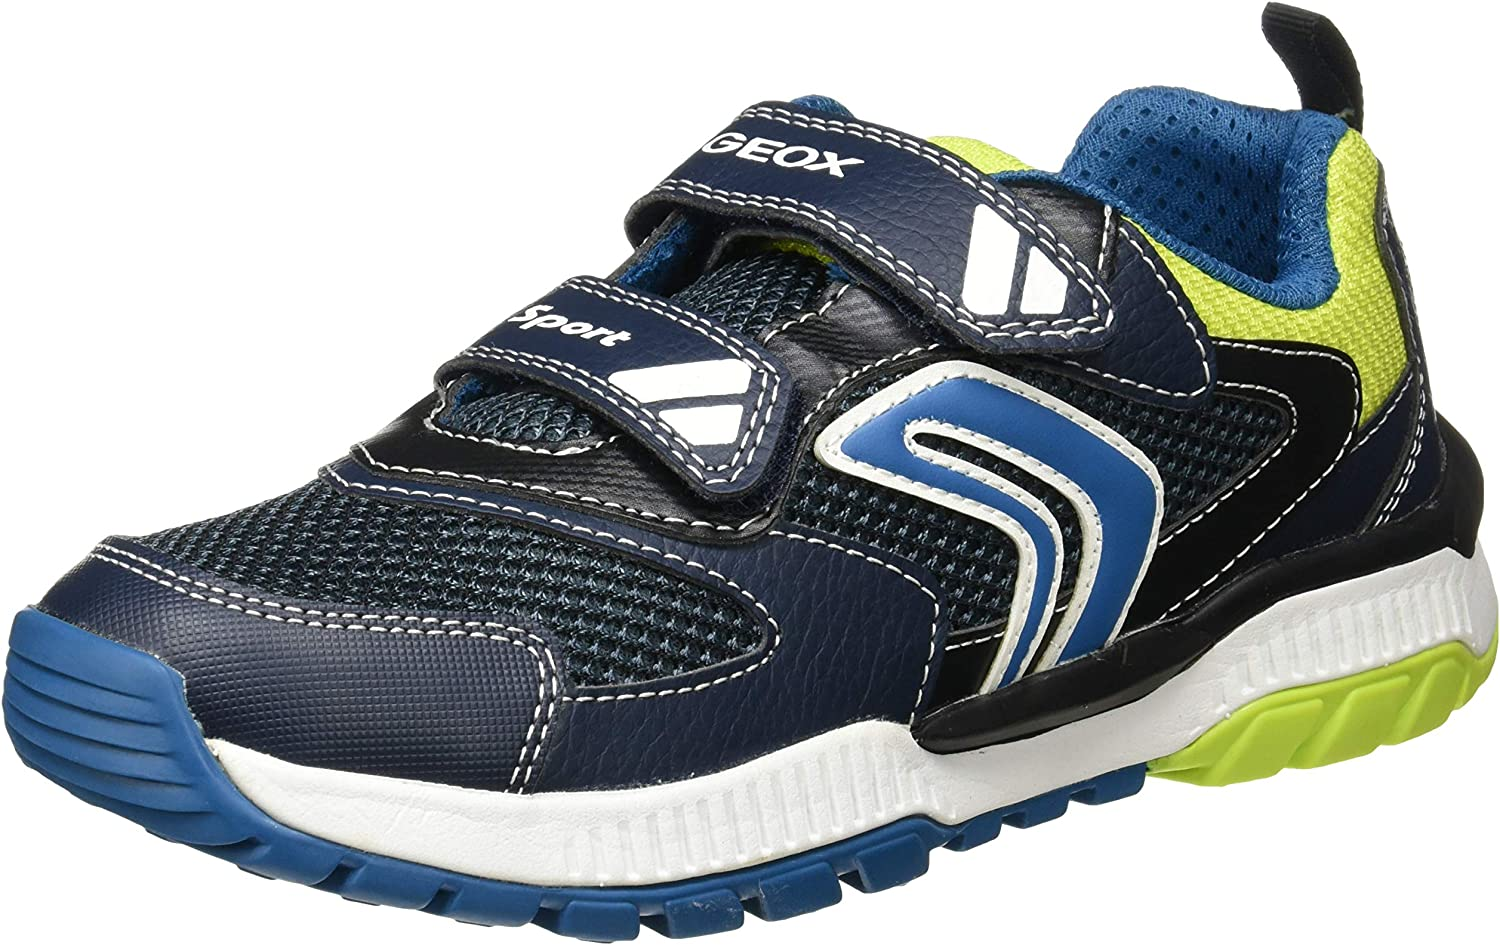 Geox - Little Kids' Big Sneakers Free Shipping New Branded goods 4 Boys' Tuono